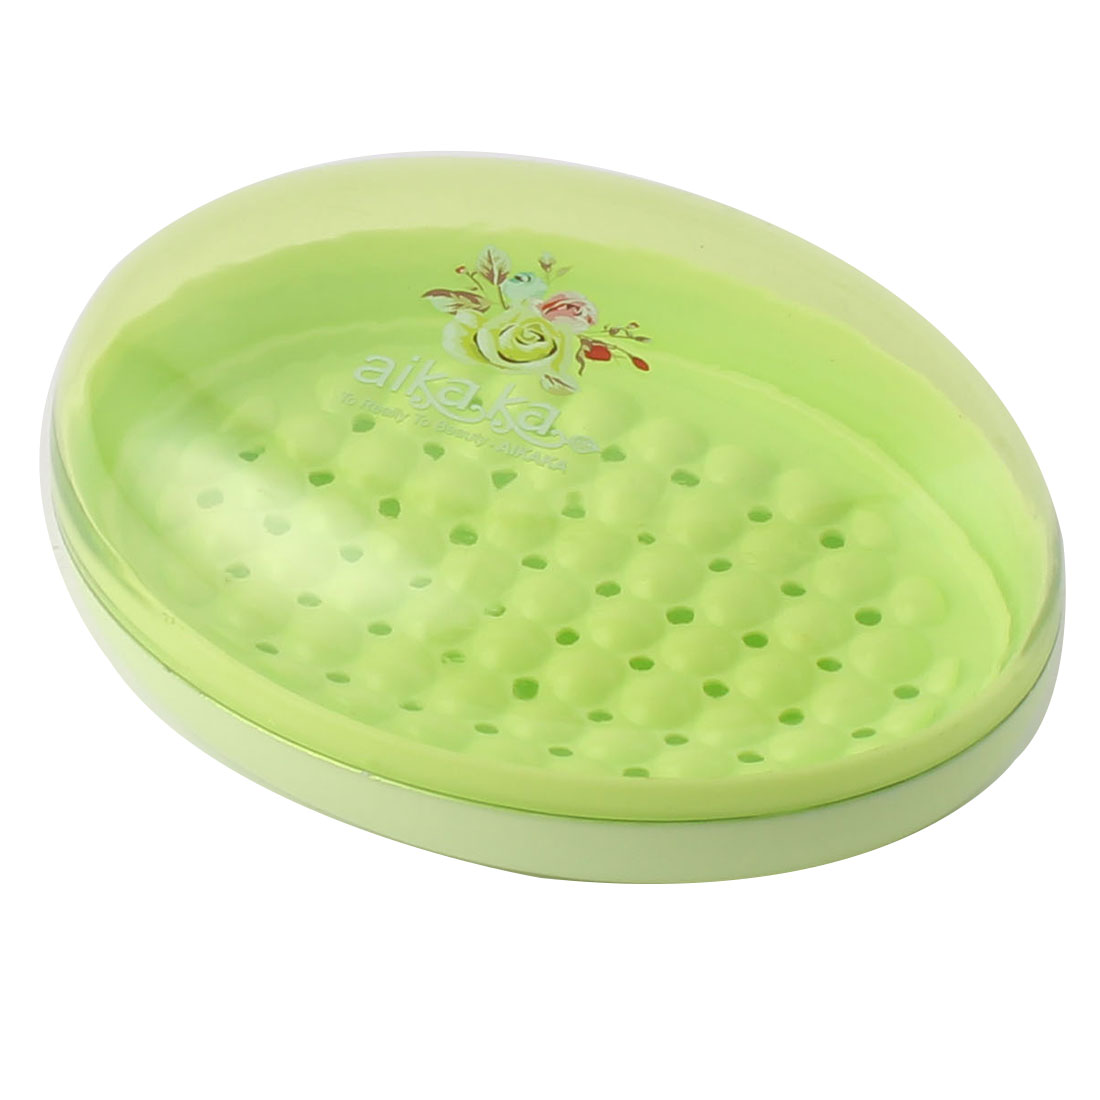 Household Bathroom Plastic Oval Shower Soap Holder Draining Box Dish Container Green